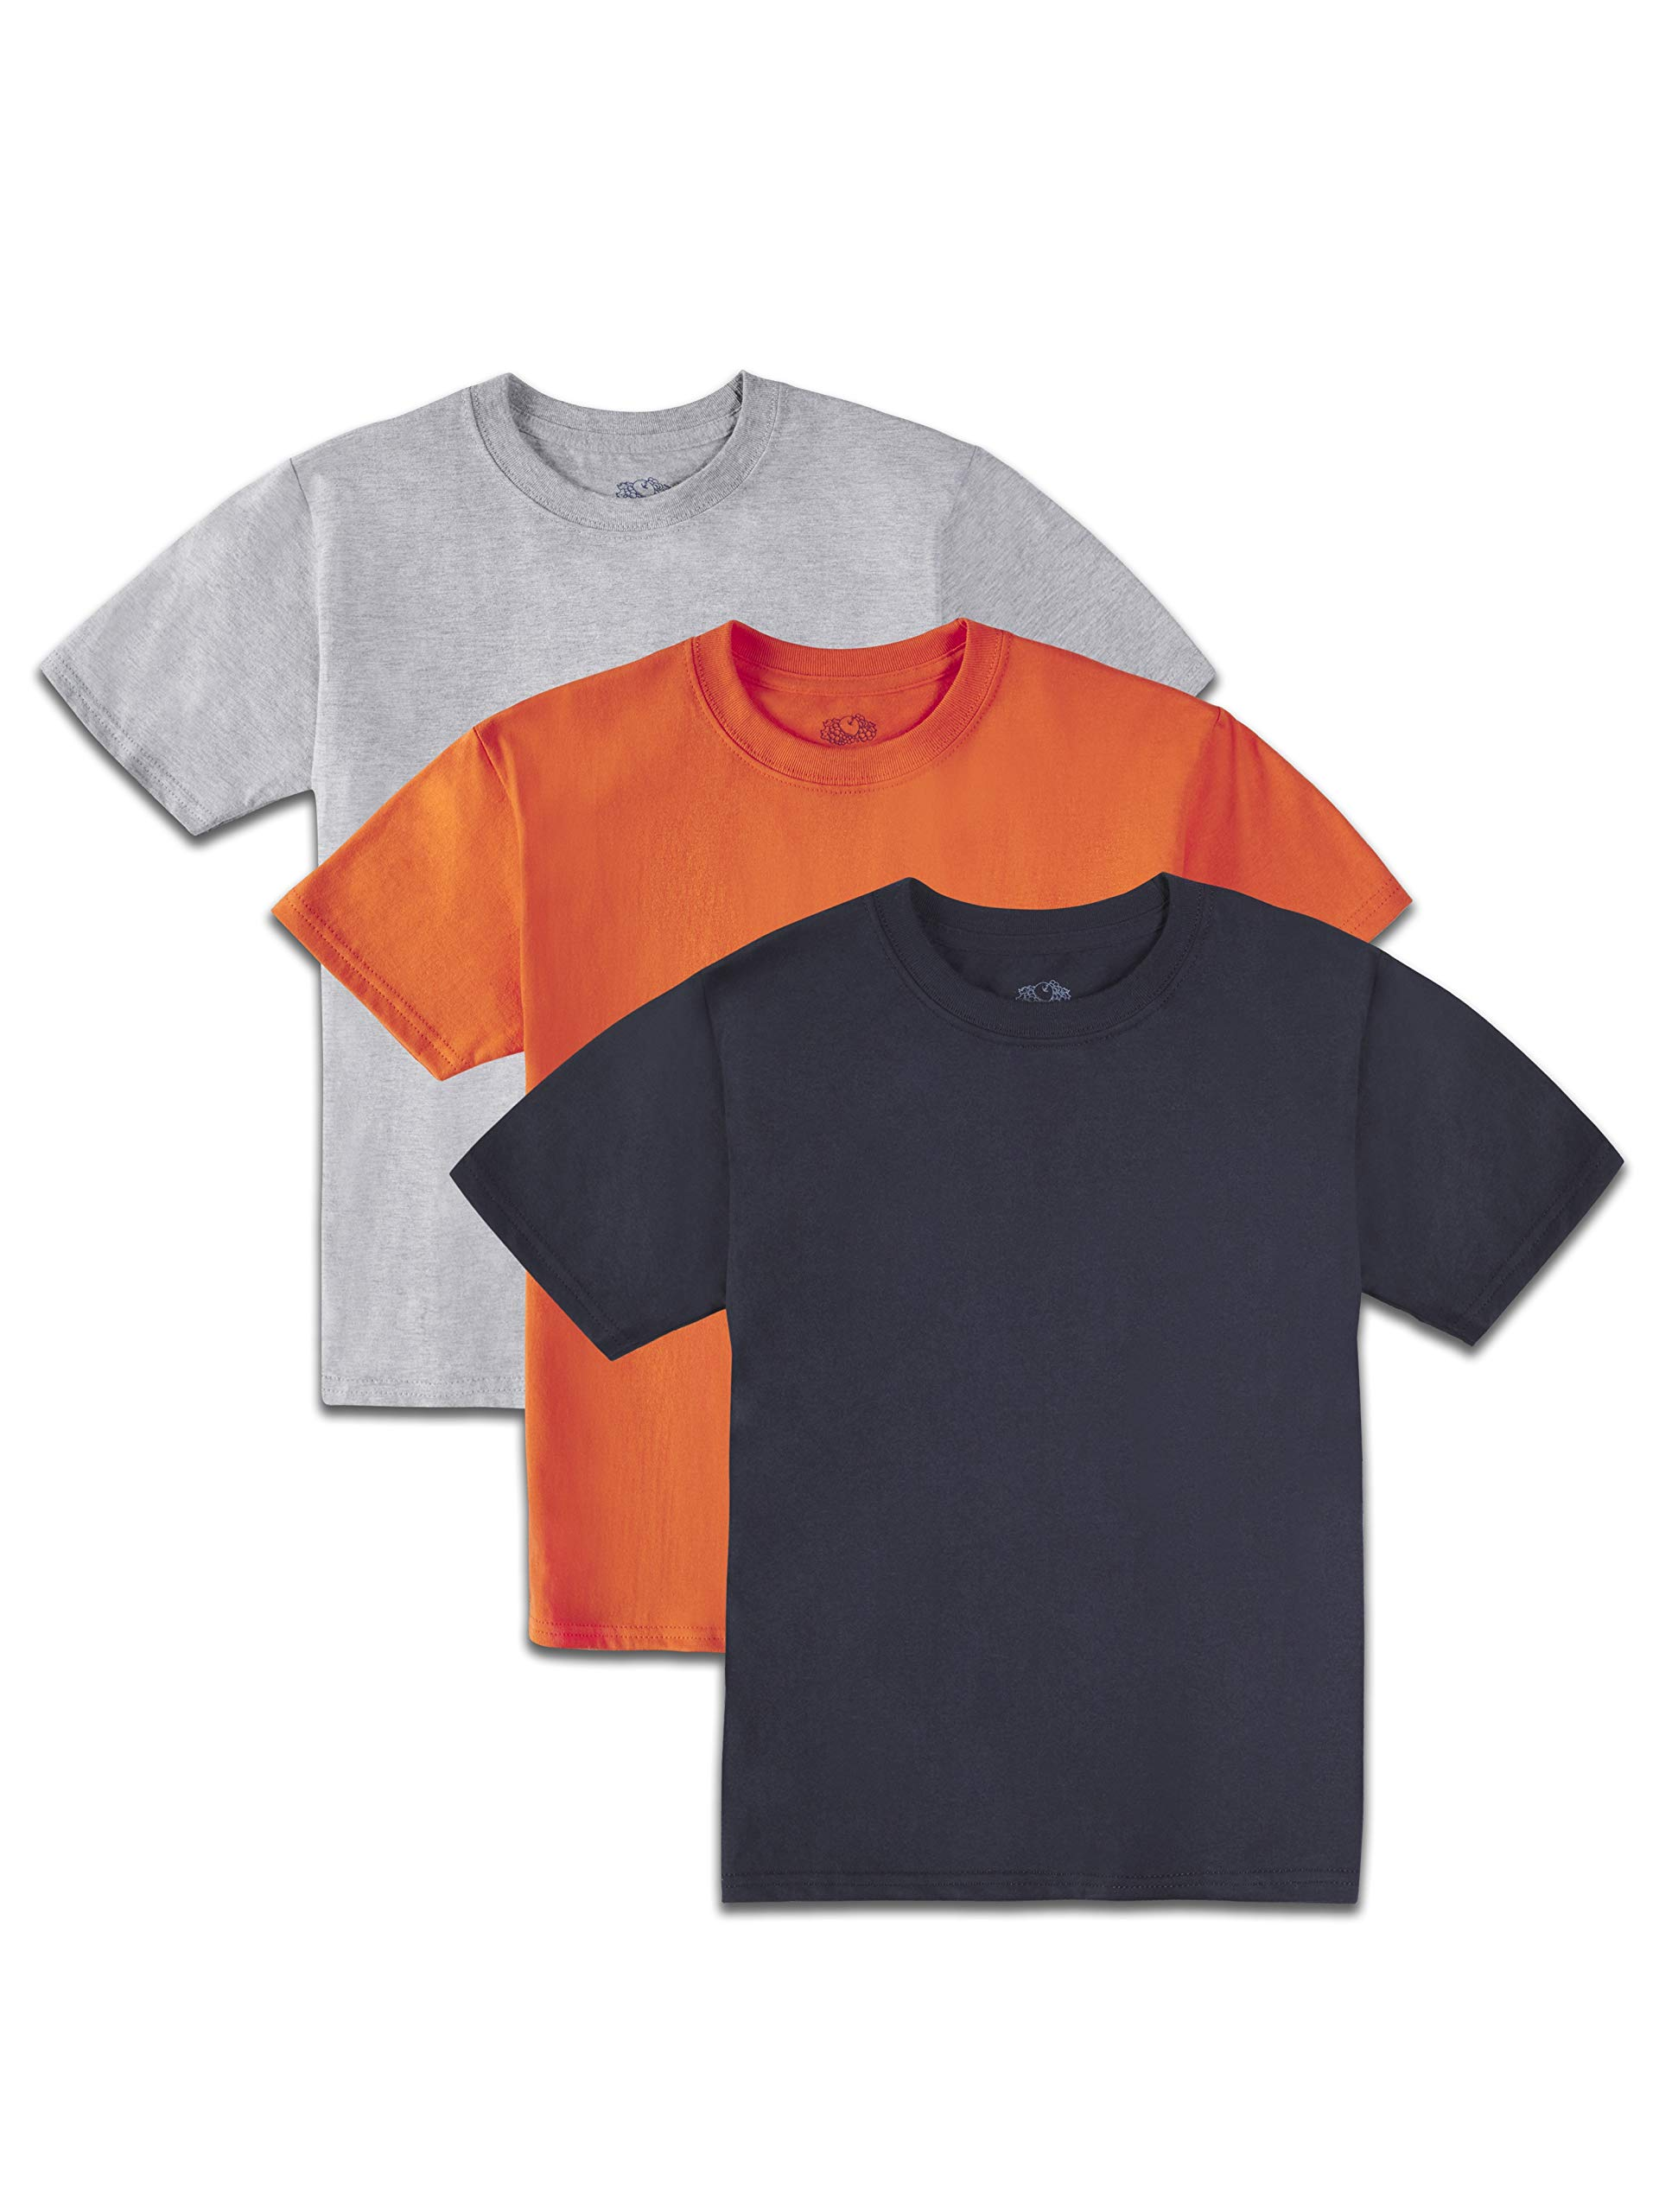 Fruit of the Loom Boys' Solid Multi-Color Short Sleeve Soft Crew T-Shirts, 3 Pack